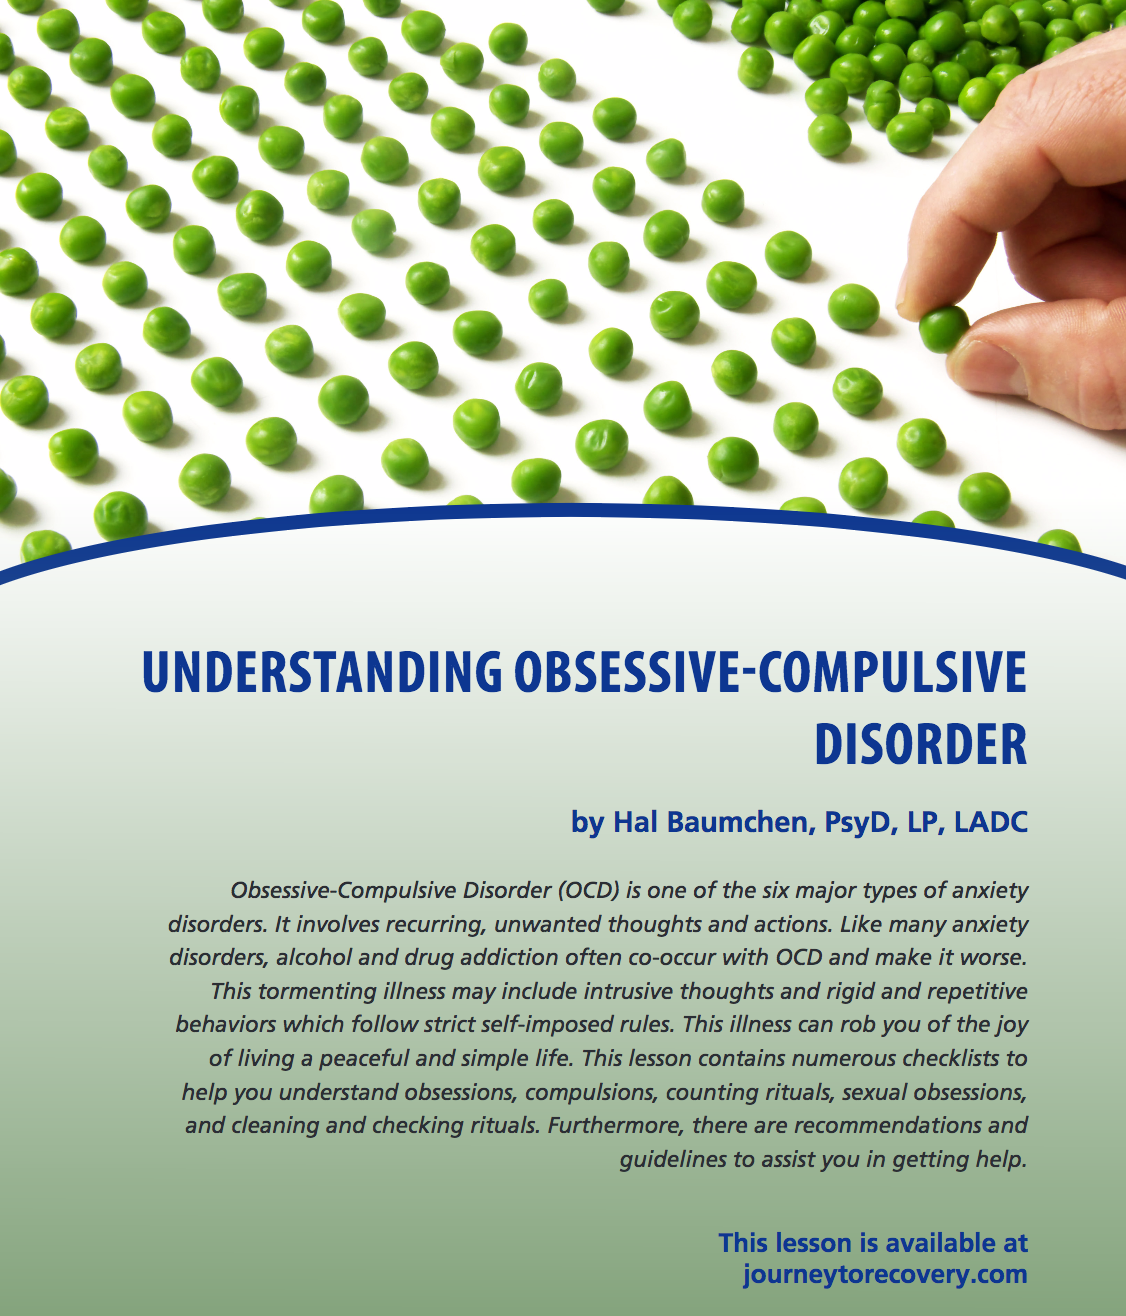 Worksheets Co-occurring Disorders Worksheets co occurring disorders treatment worksheets understanding obsessive compulsive disorder